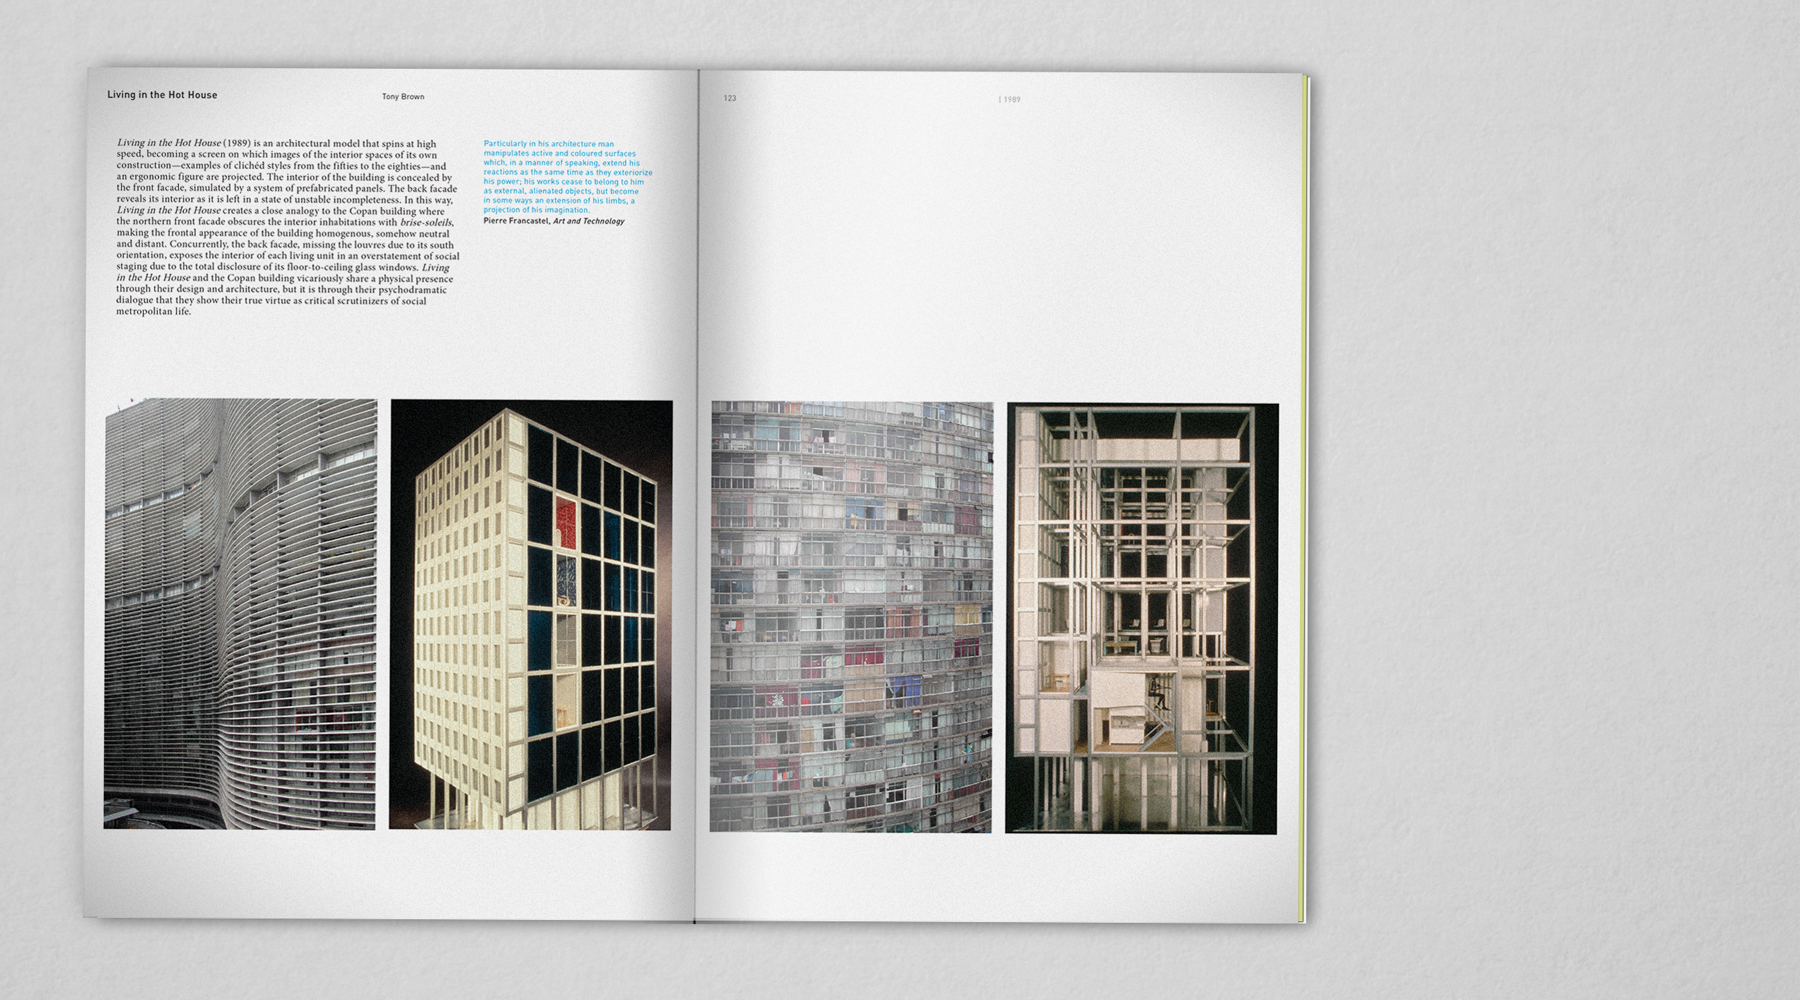 COMPLEX ORDER: INTRUSIONS IN PUBLIC SPACE - SPMB / PUBLICATION /  BUY NOW